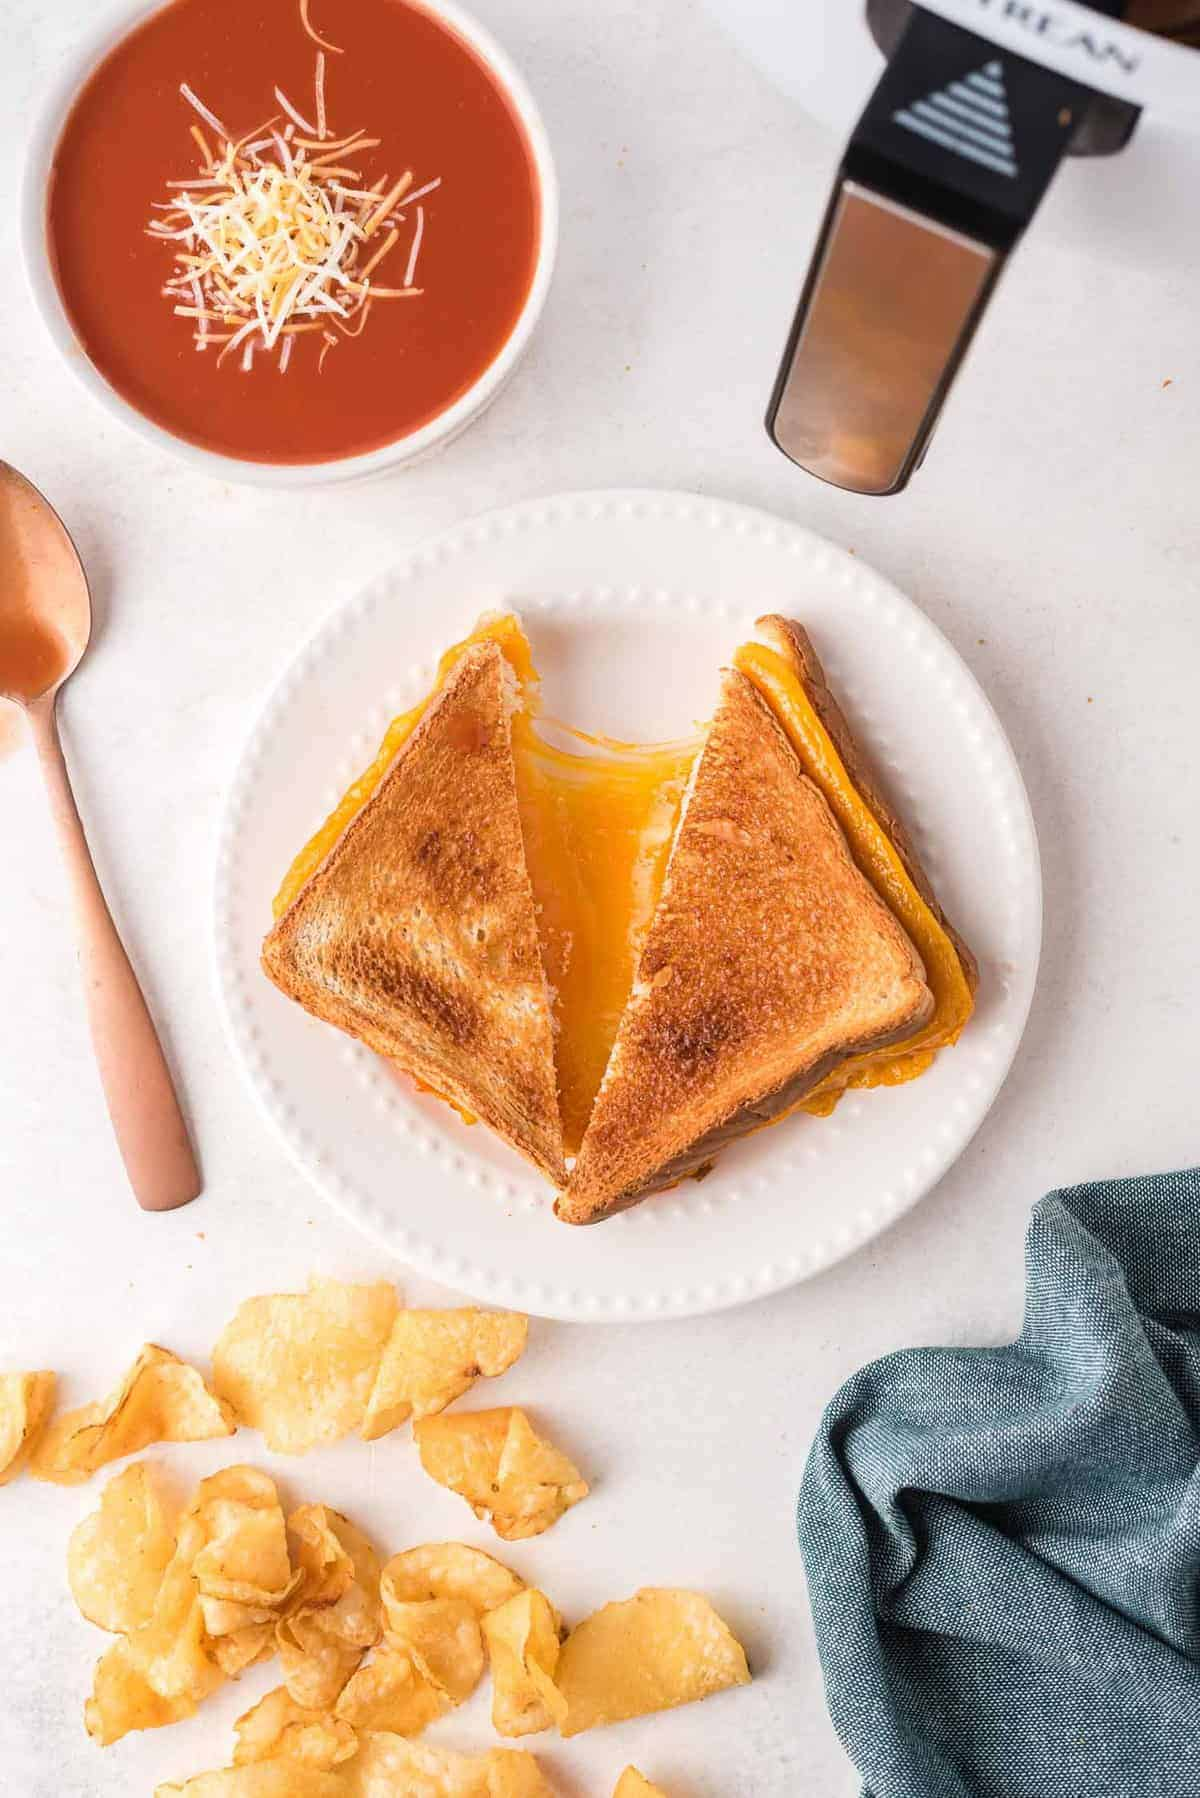 Overhead view of a grilled cheese sandwich on a white plate, being pulled apart to show cheese.